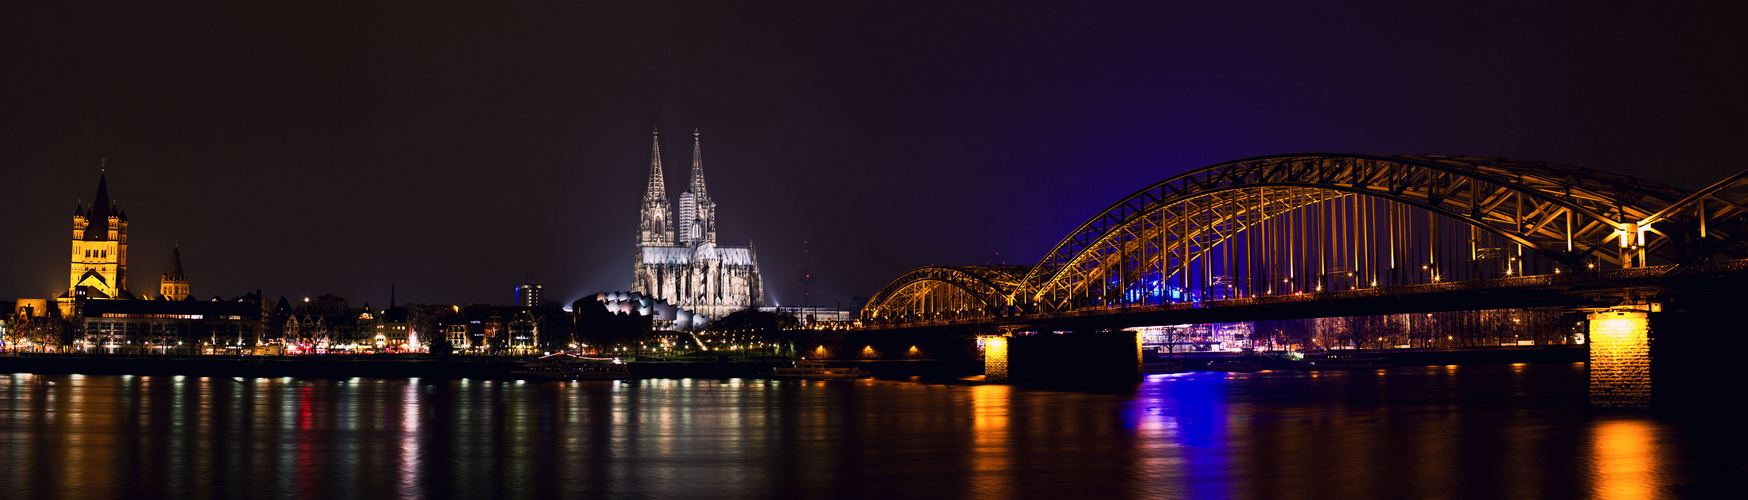 Cologne @ night